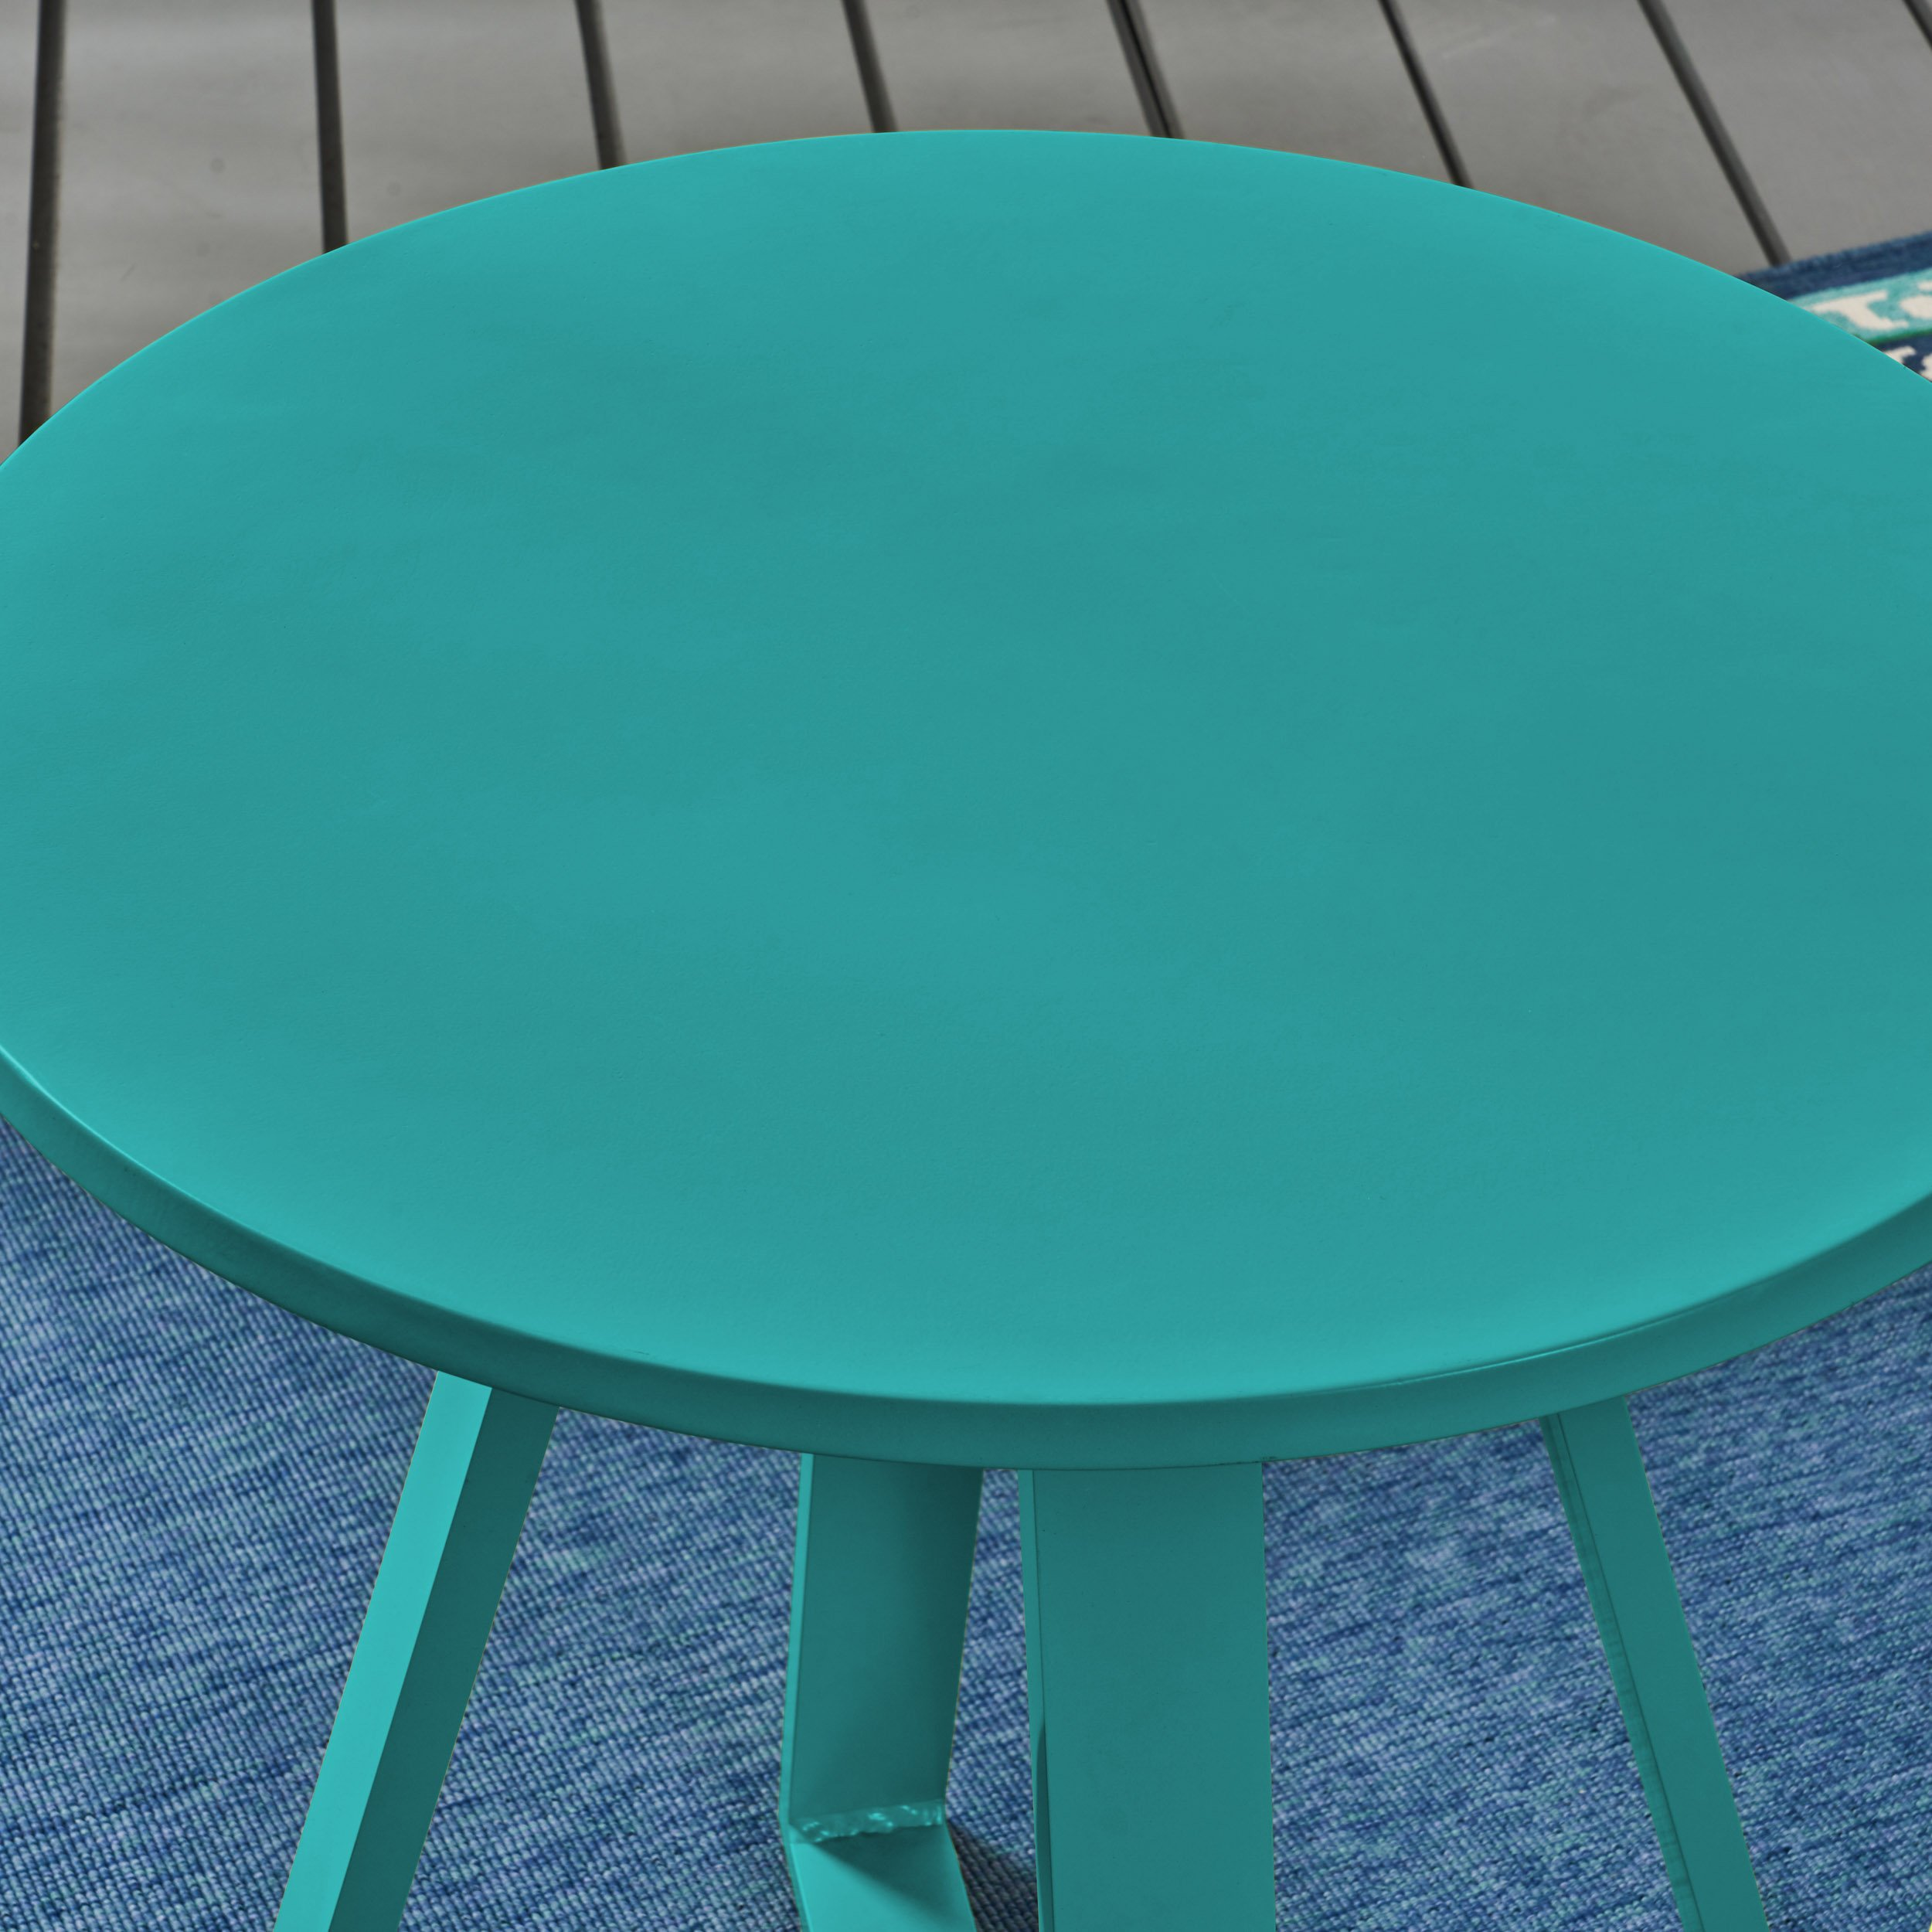 Great Deal Furniture Kate Outdoor Iron Bistro Set, Matte Teal by Great Deal Furniture (Image #5)